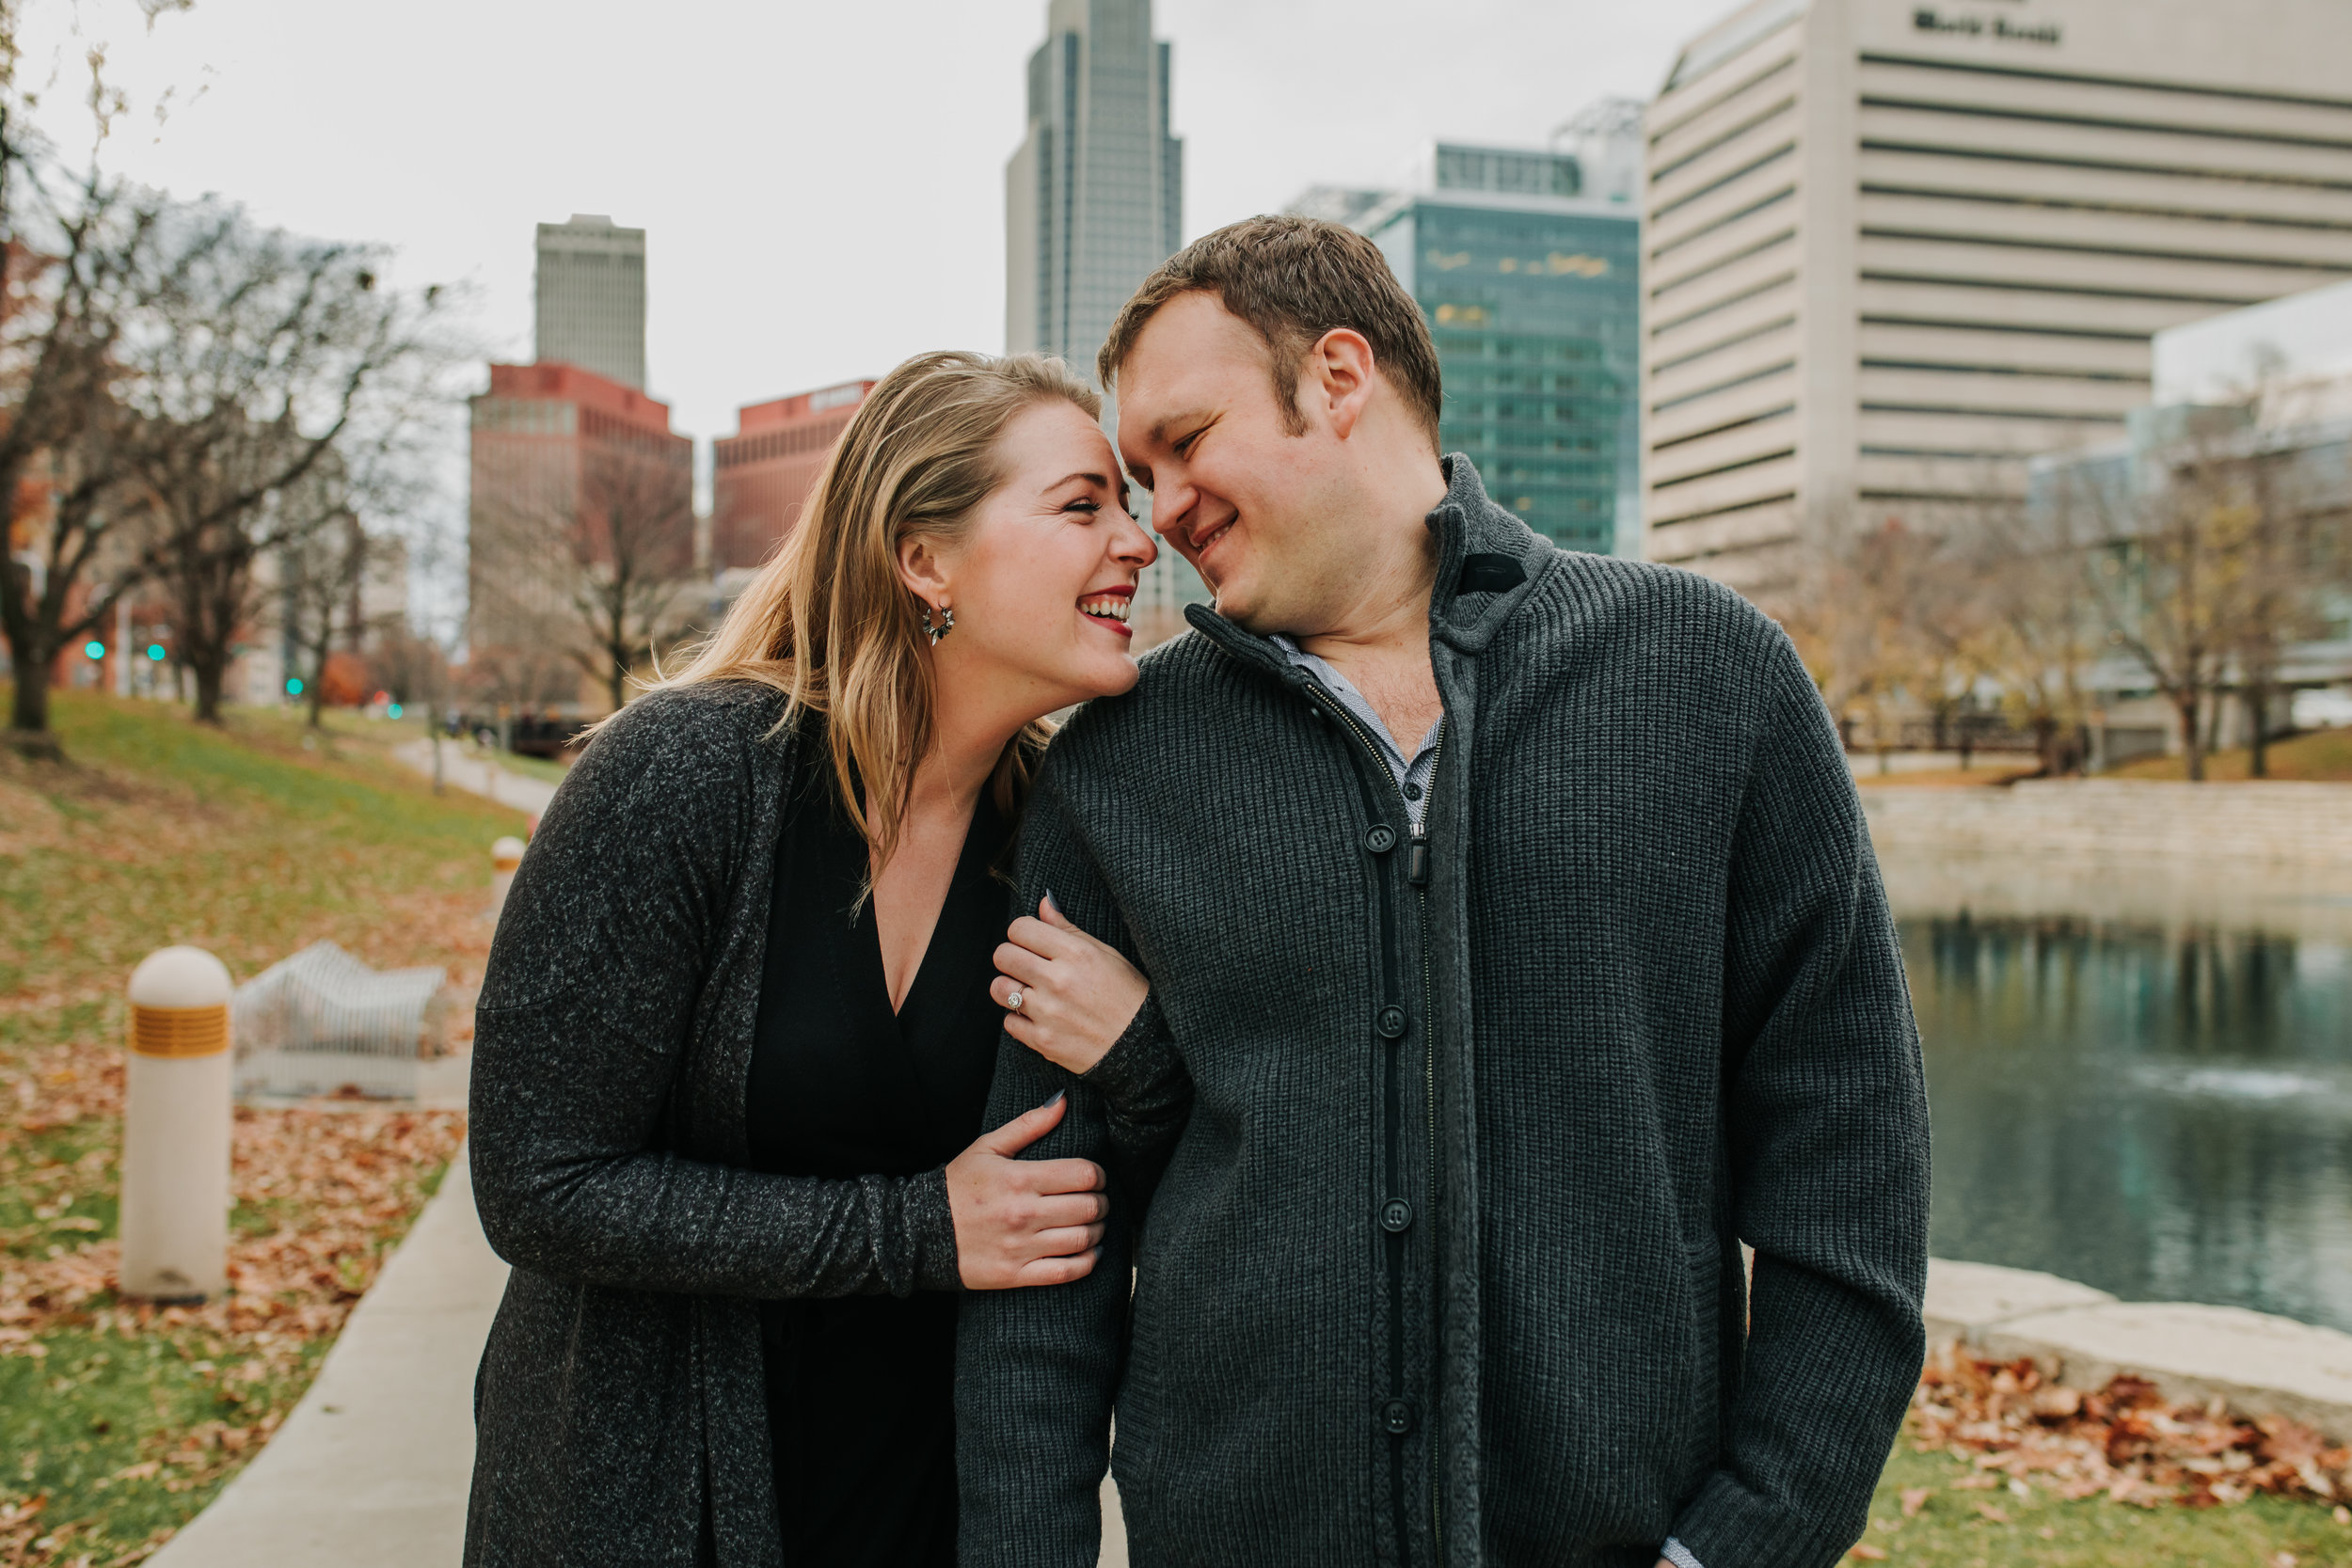 Meghan & Igor - Engaged - Nathaniel Jensen Photography - Omaha Nebraska Wedding Photograper-83.jpg